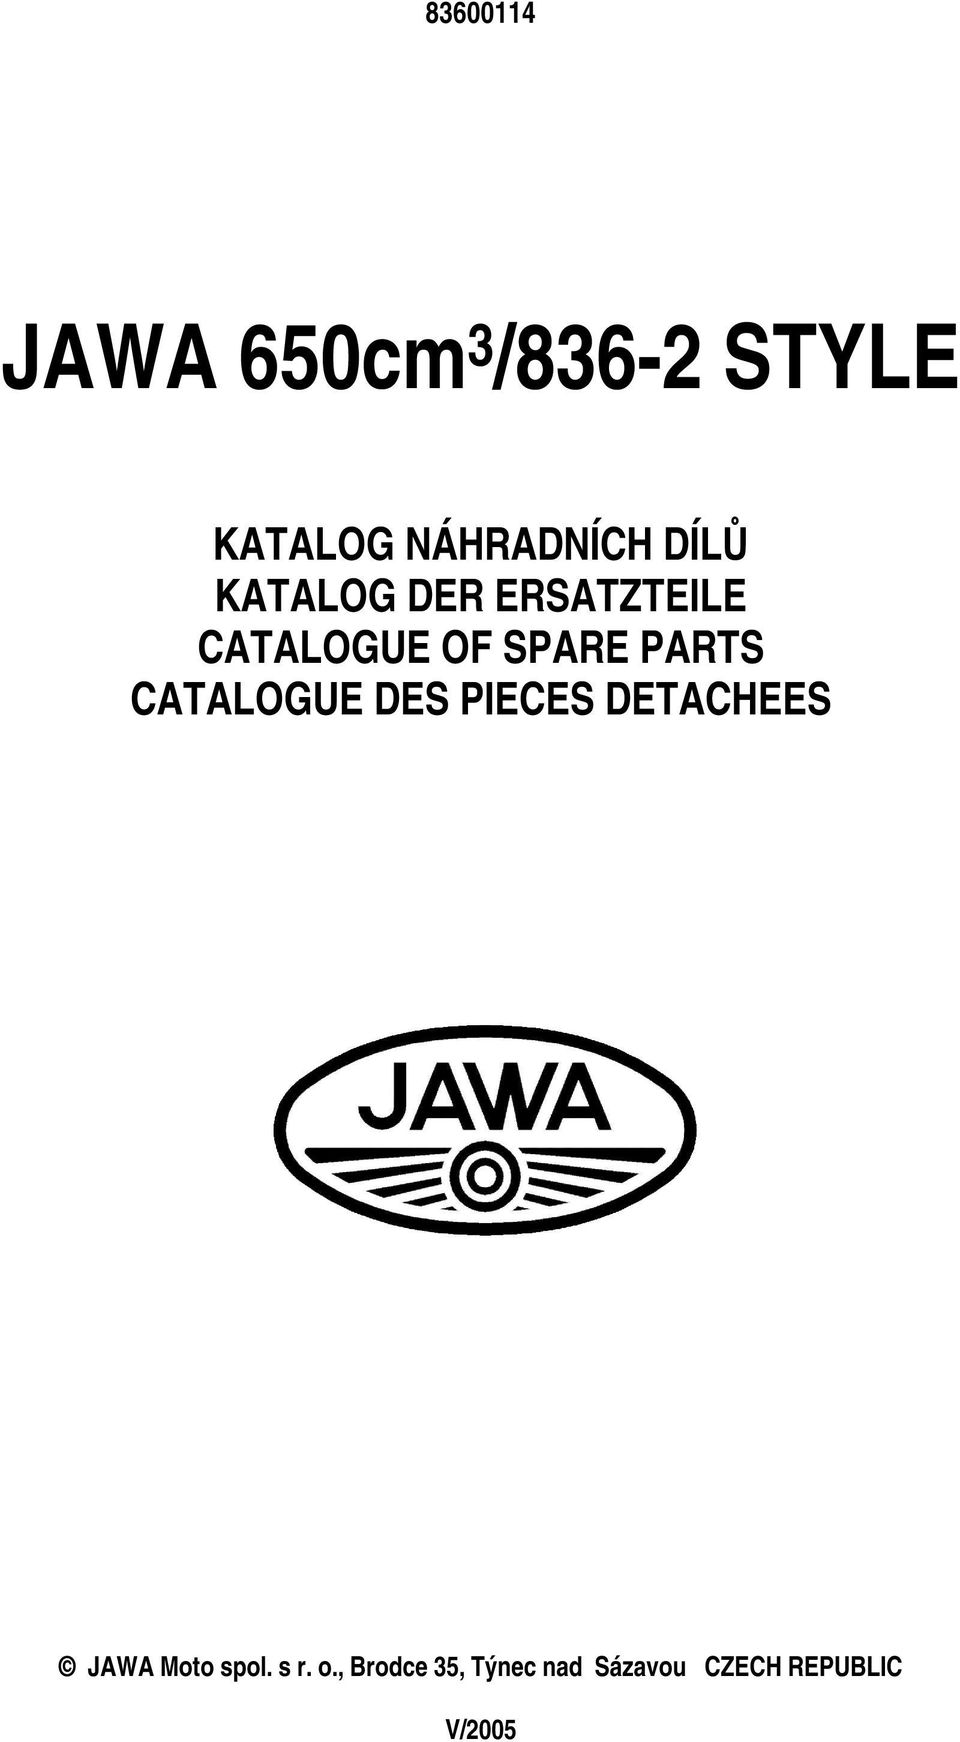 PARTS CATALOGUE DES PIECES DETACHEES JAWA Moto spol.